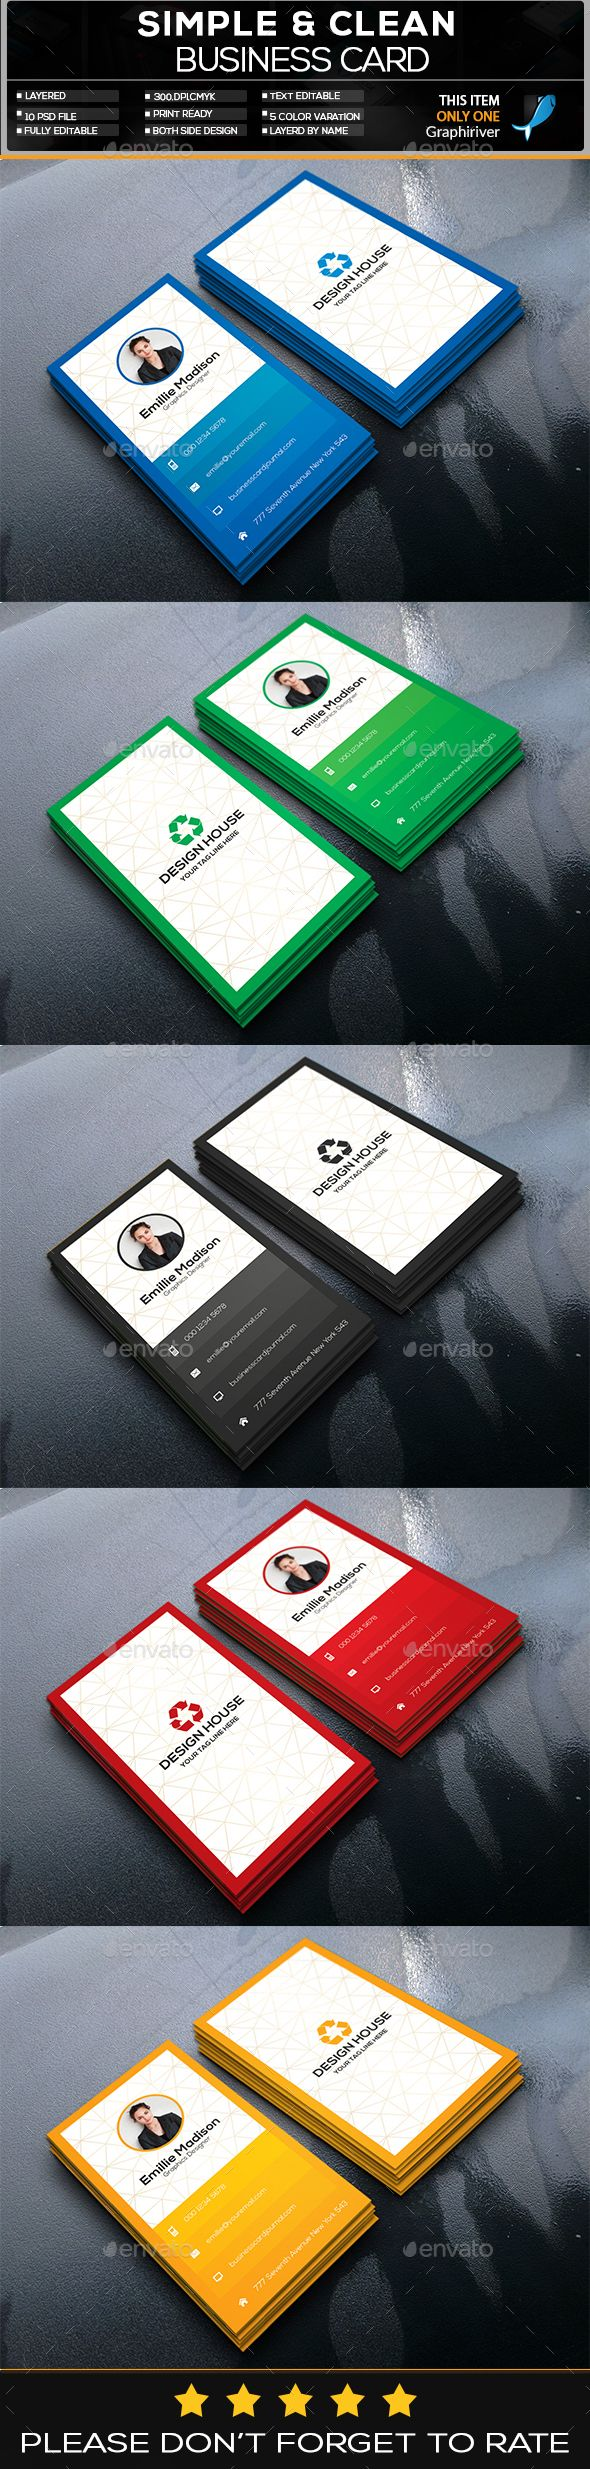 Vertical Business Card - #Business #Cards Print Templates Download here: https://graphicriver.net/item/vertical-business-card/20271854?ref=alena994